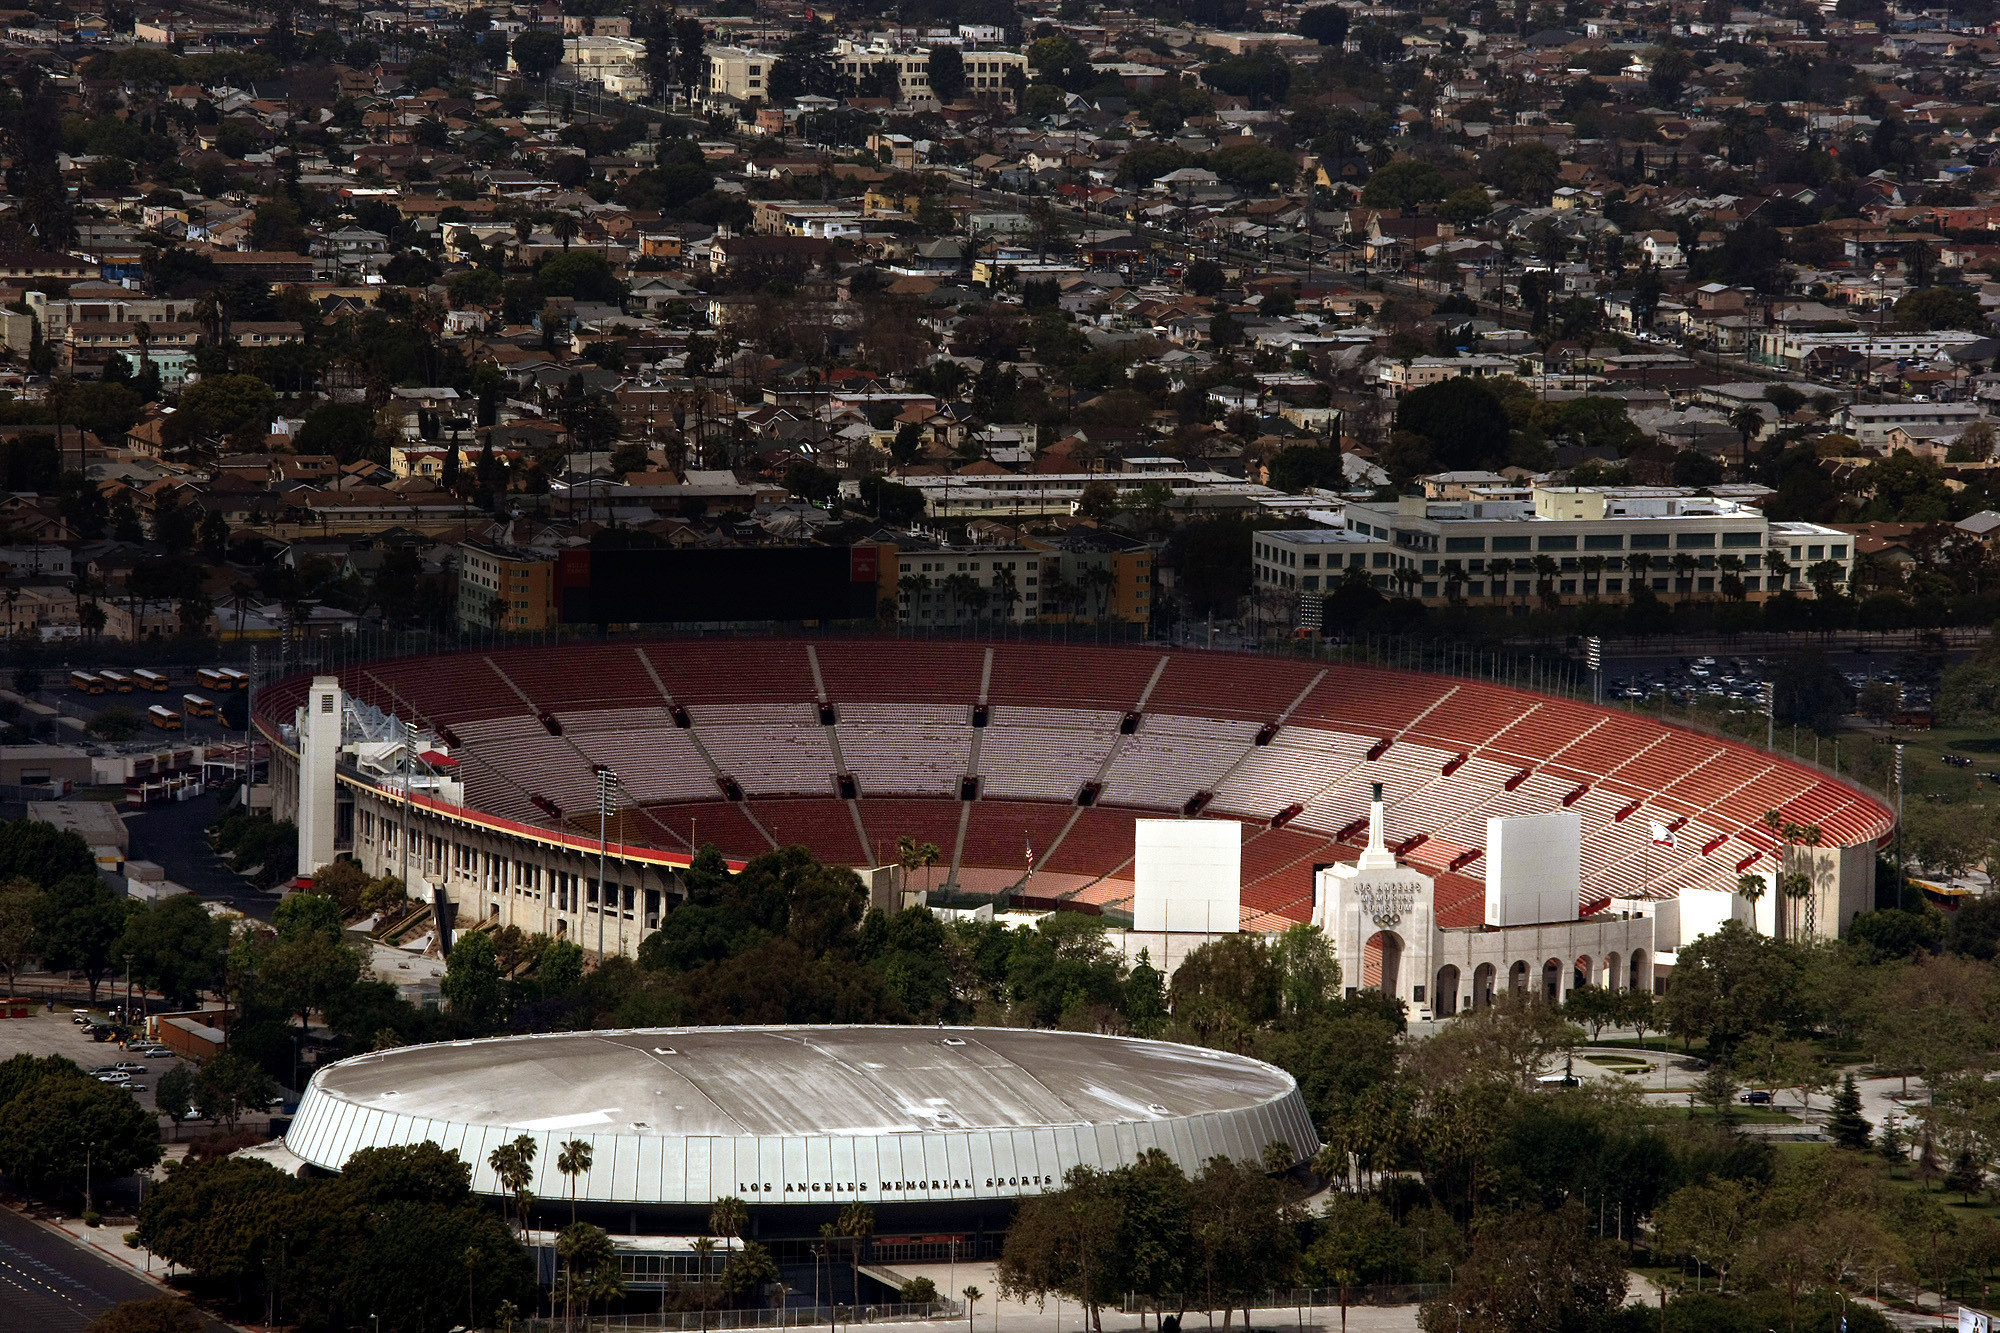 Nfl In L A Coliseum Is Ready When Nfl Is Ready Usc Says